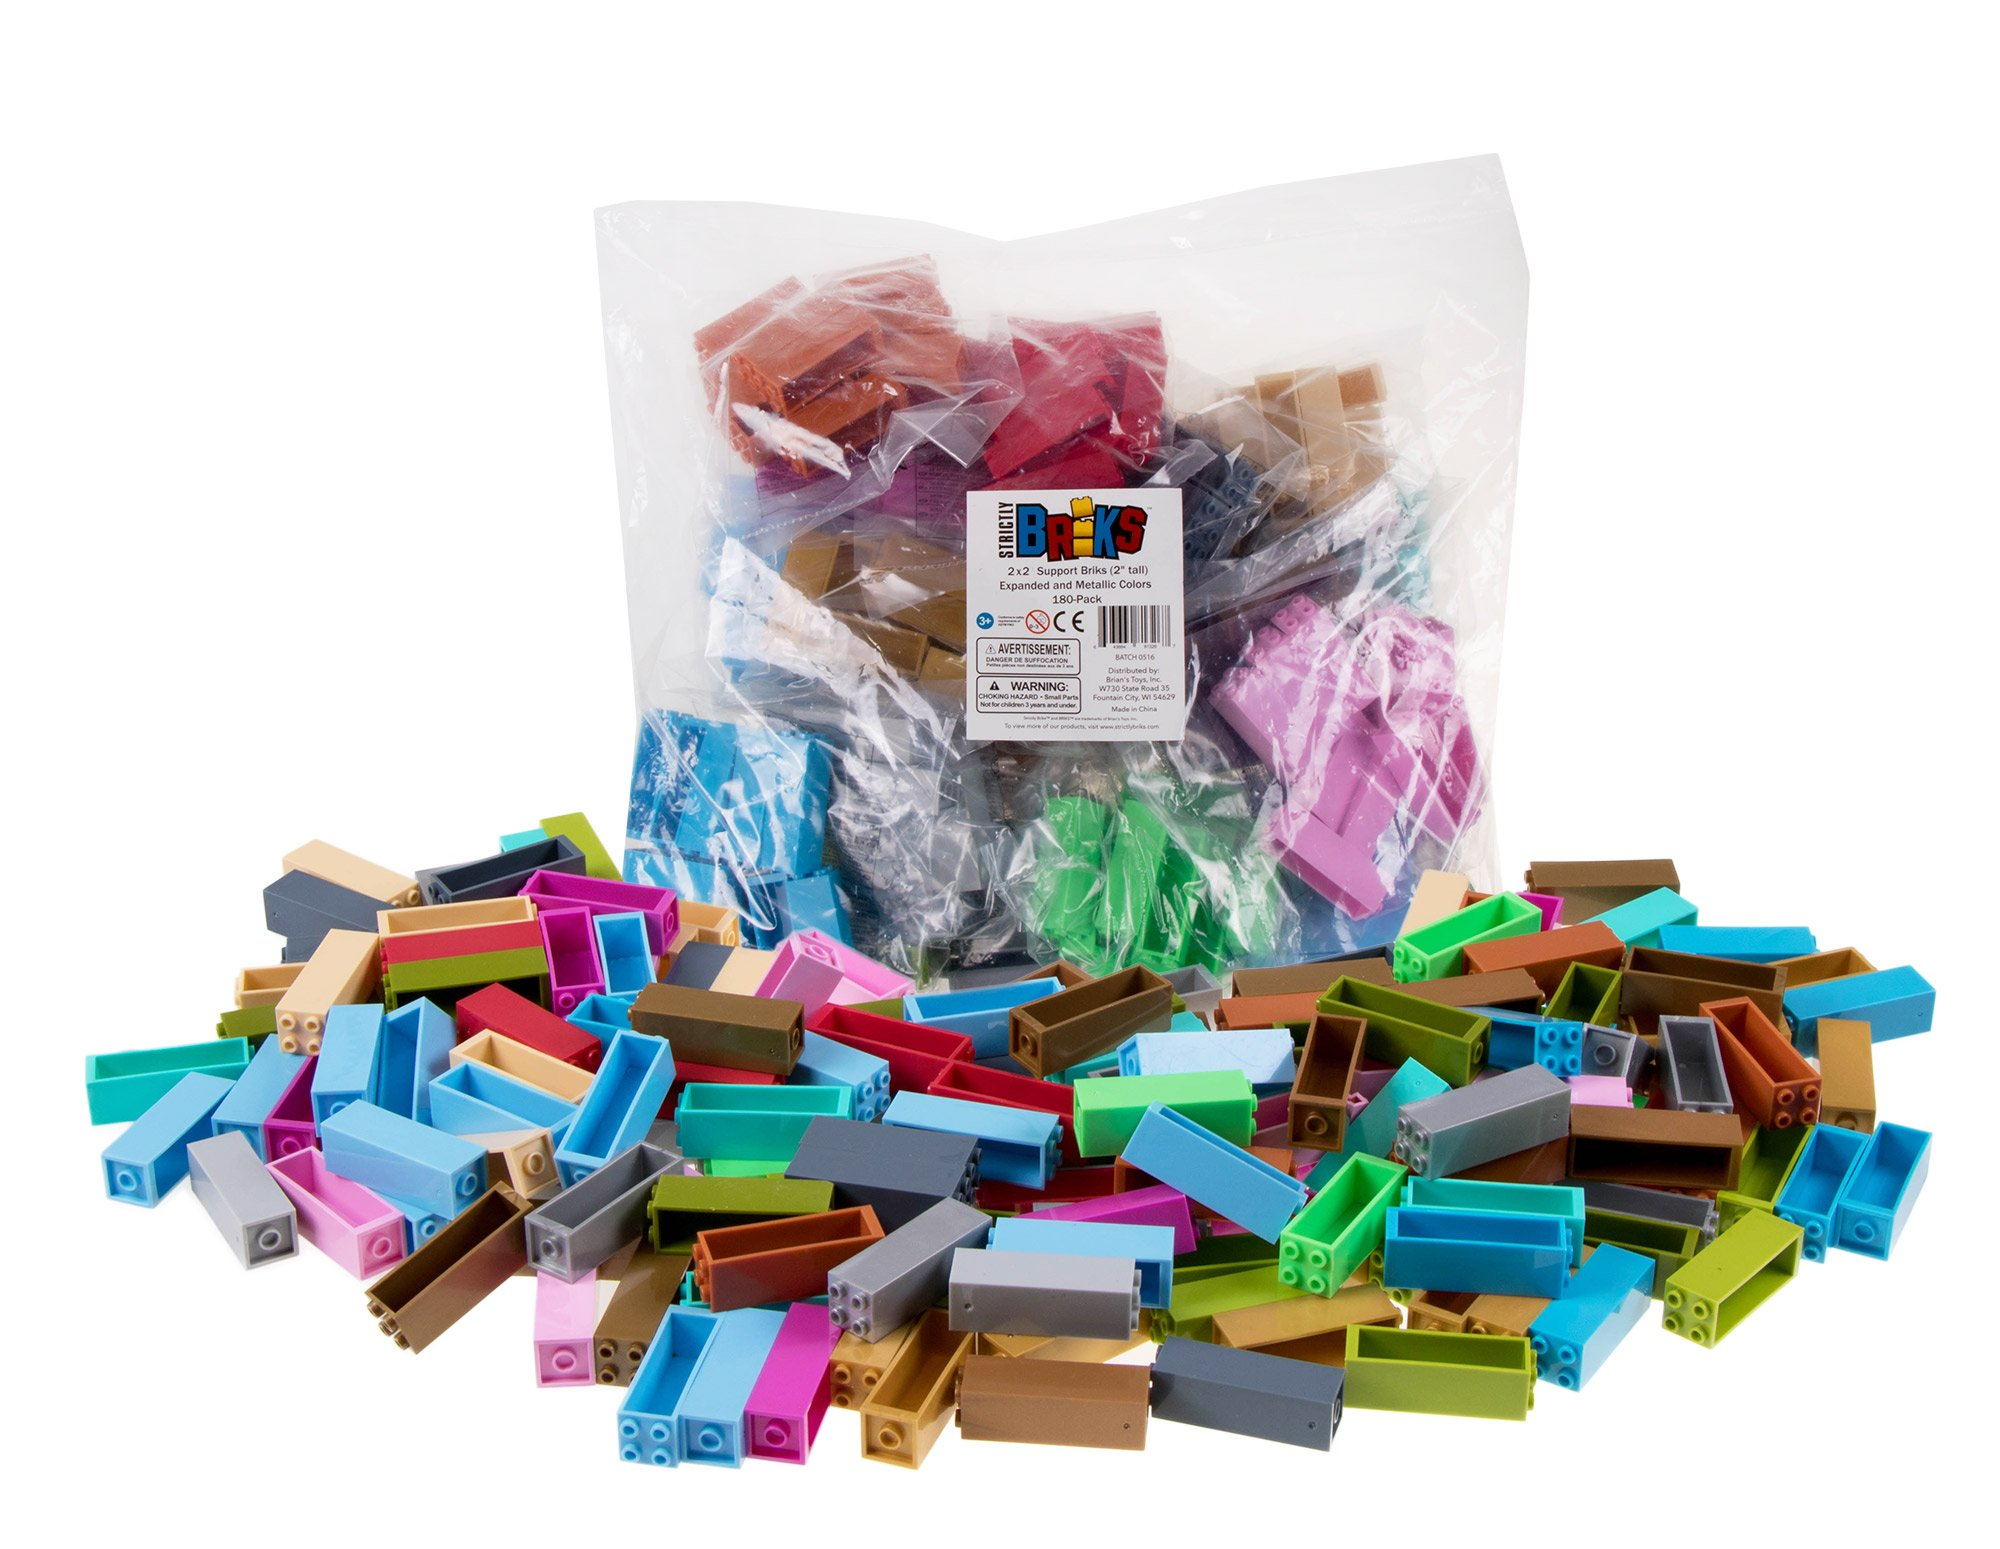 Strictly Briks Classic Stackers Set of 180 Building Bricks | New and Improved 2x2 Stackers for Towers and More! | 100% Compatible with All Major Brands | Rainbow and Metallic Colors